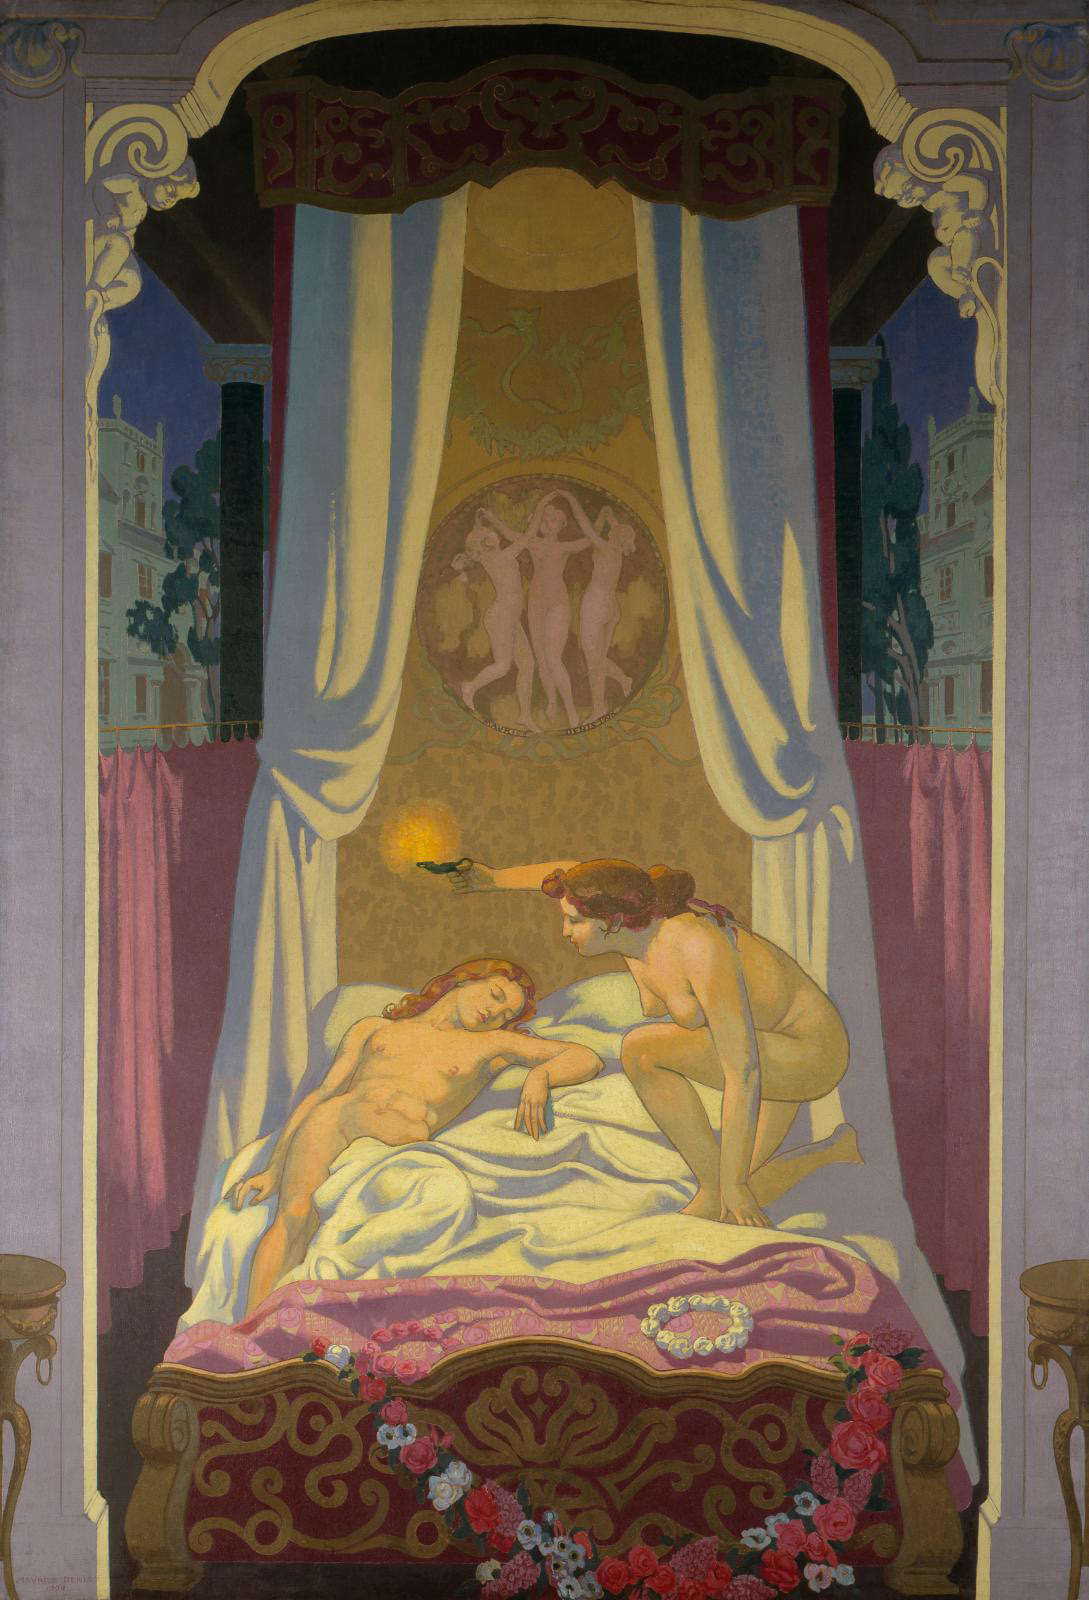 Maurice Denis (1870-1943), L'Histoire de Psyché (The Story of Psyche, 1908–1909), oil on canvas, 395 x 274.5 cm/155.51 x 108.07 in (detail